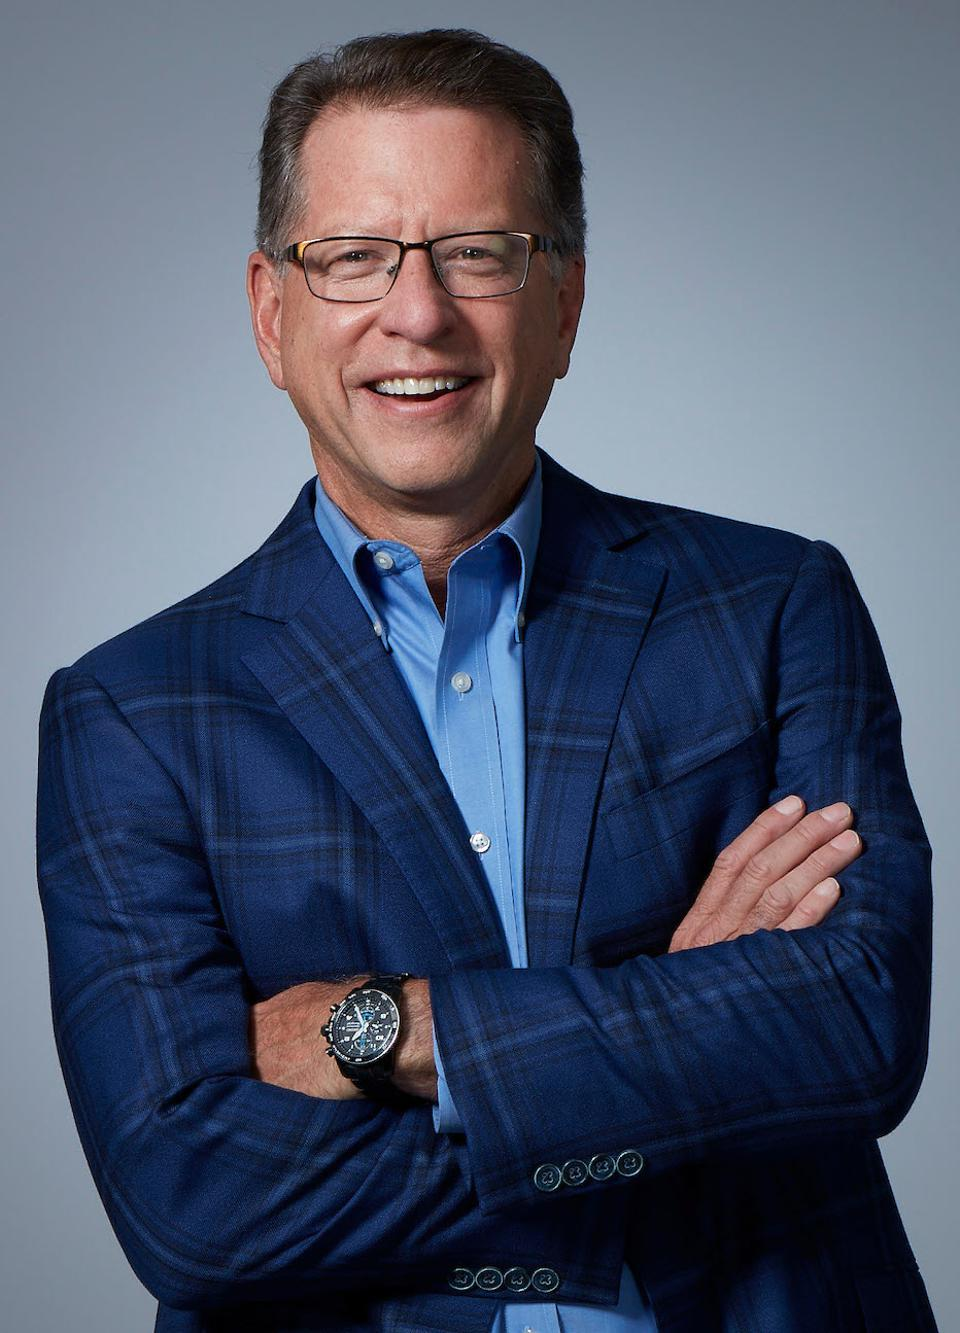 Former Farmers Insurance CMO is now CRO at Ancestry